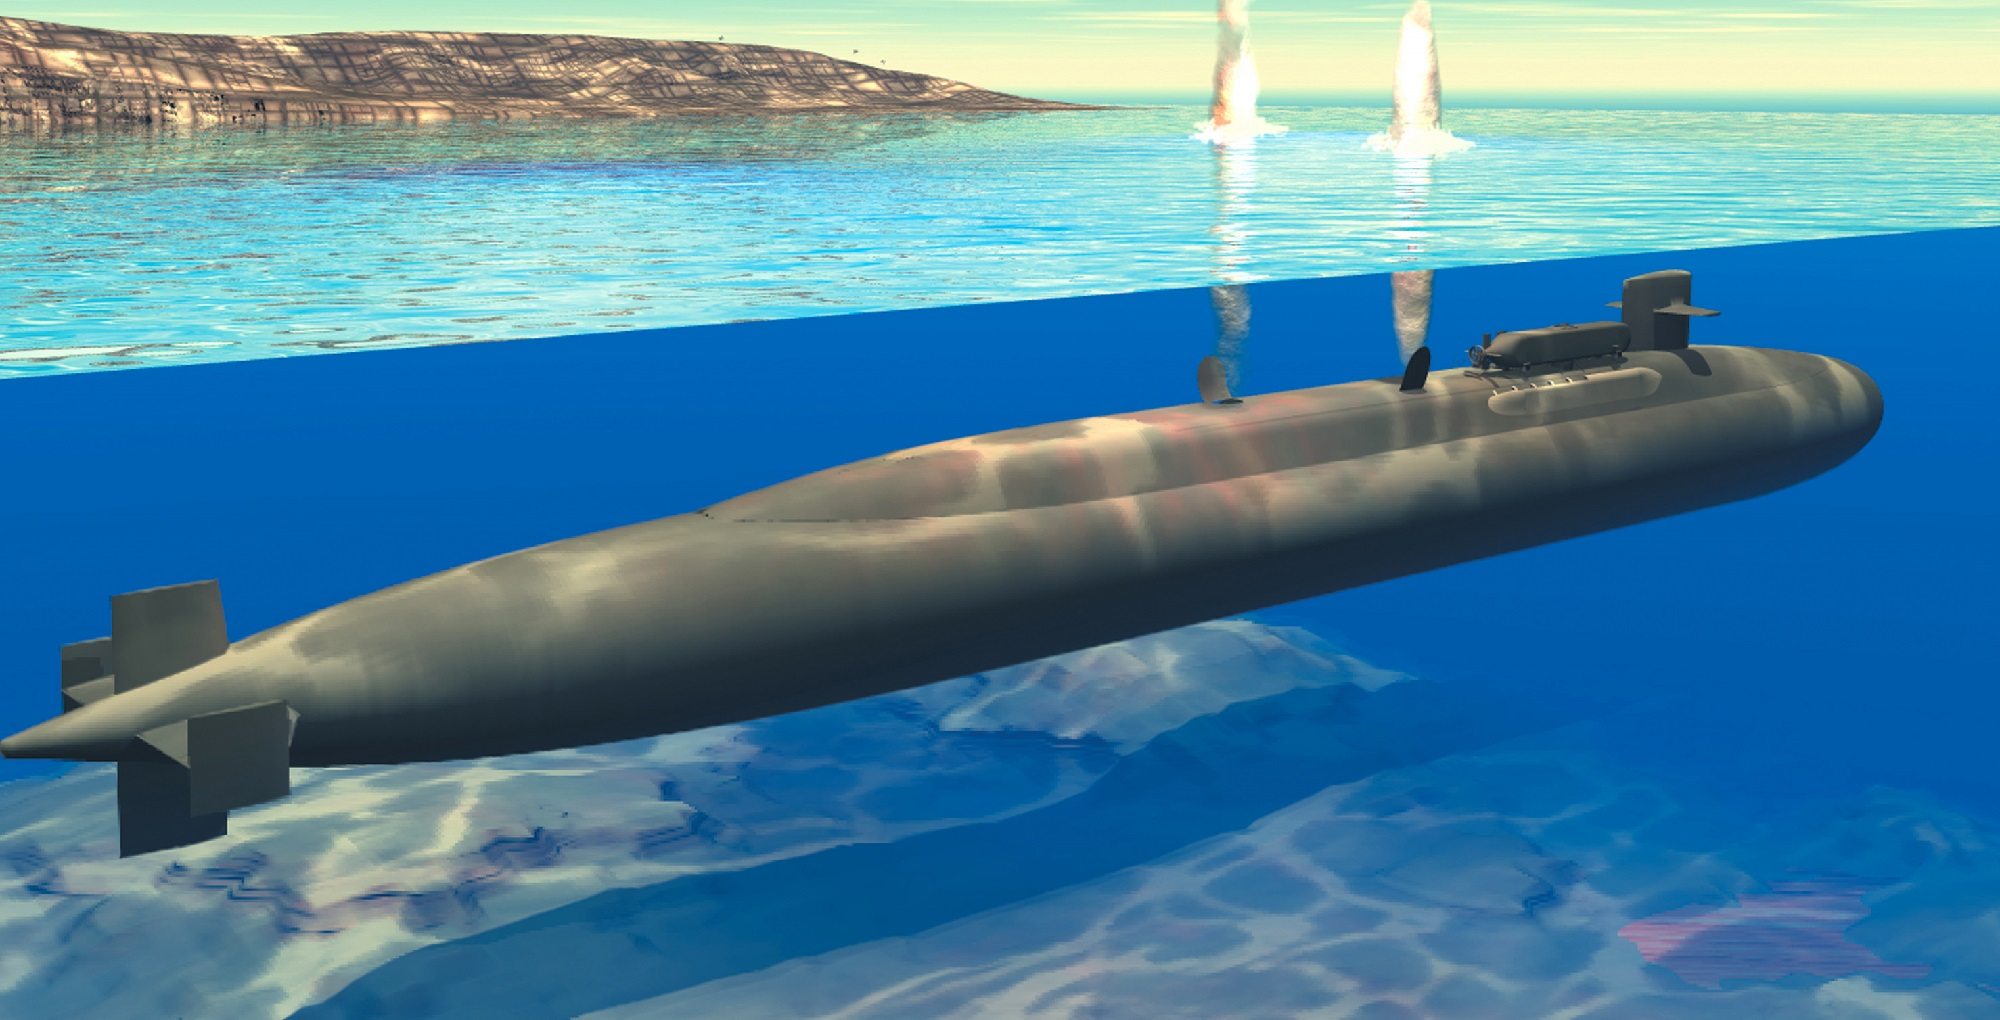 Back in 2010, the U.S. Navy Surfaced 3 Cruise Missile Submarines (As A Warning to China)